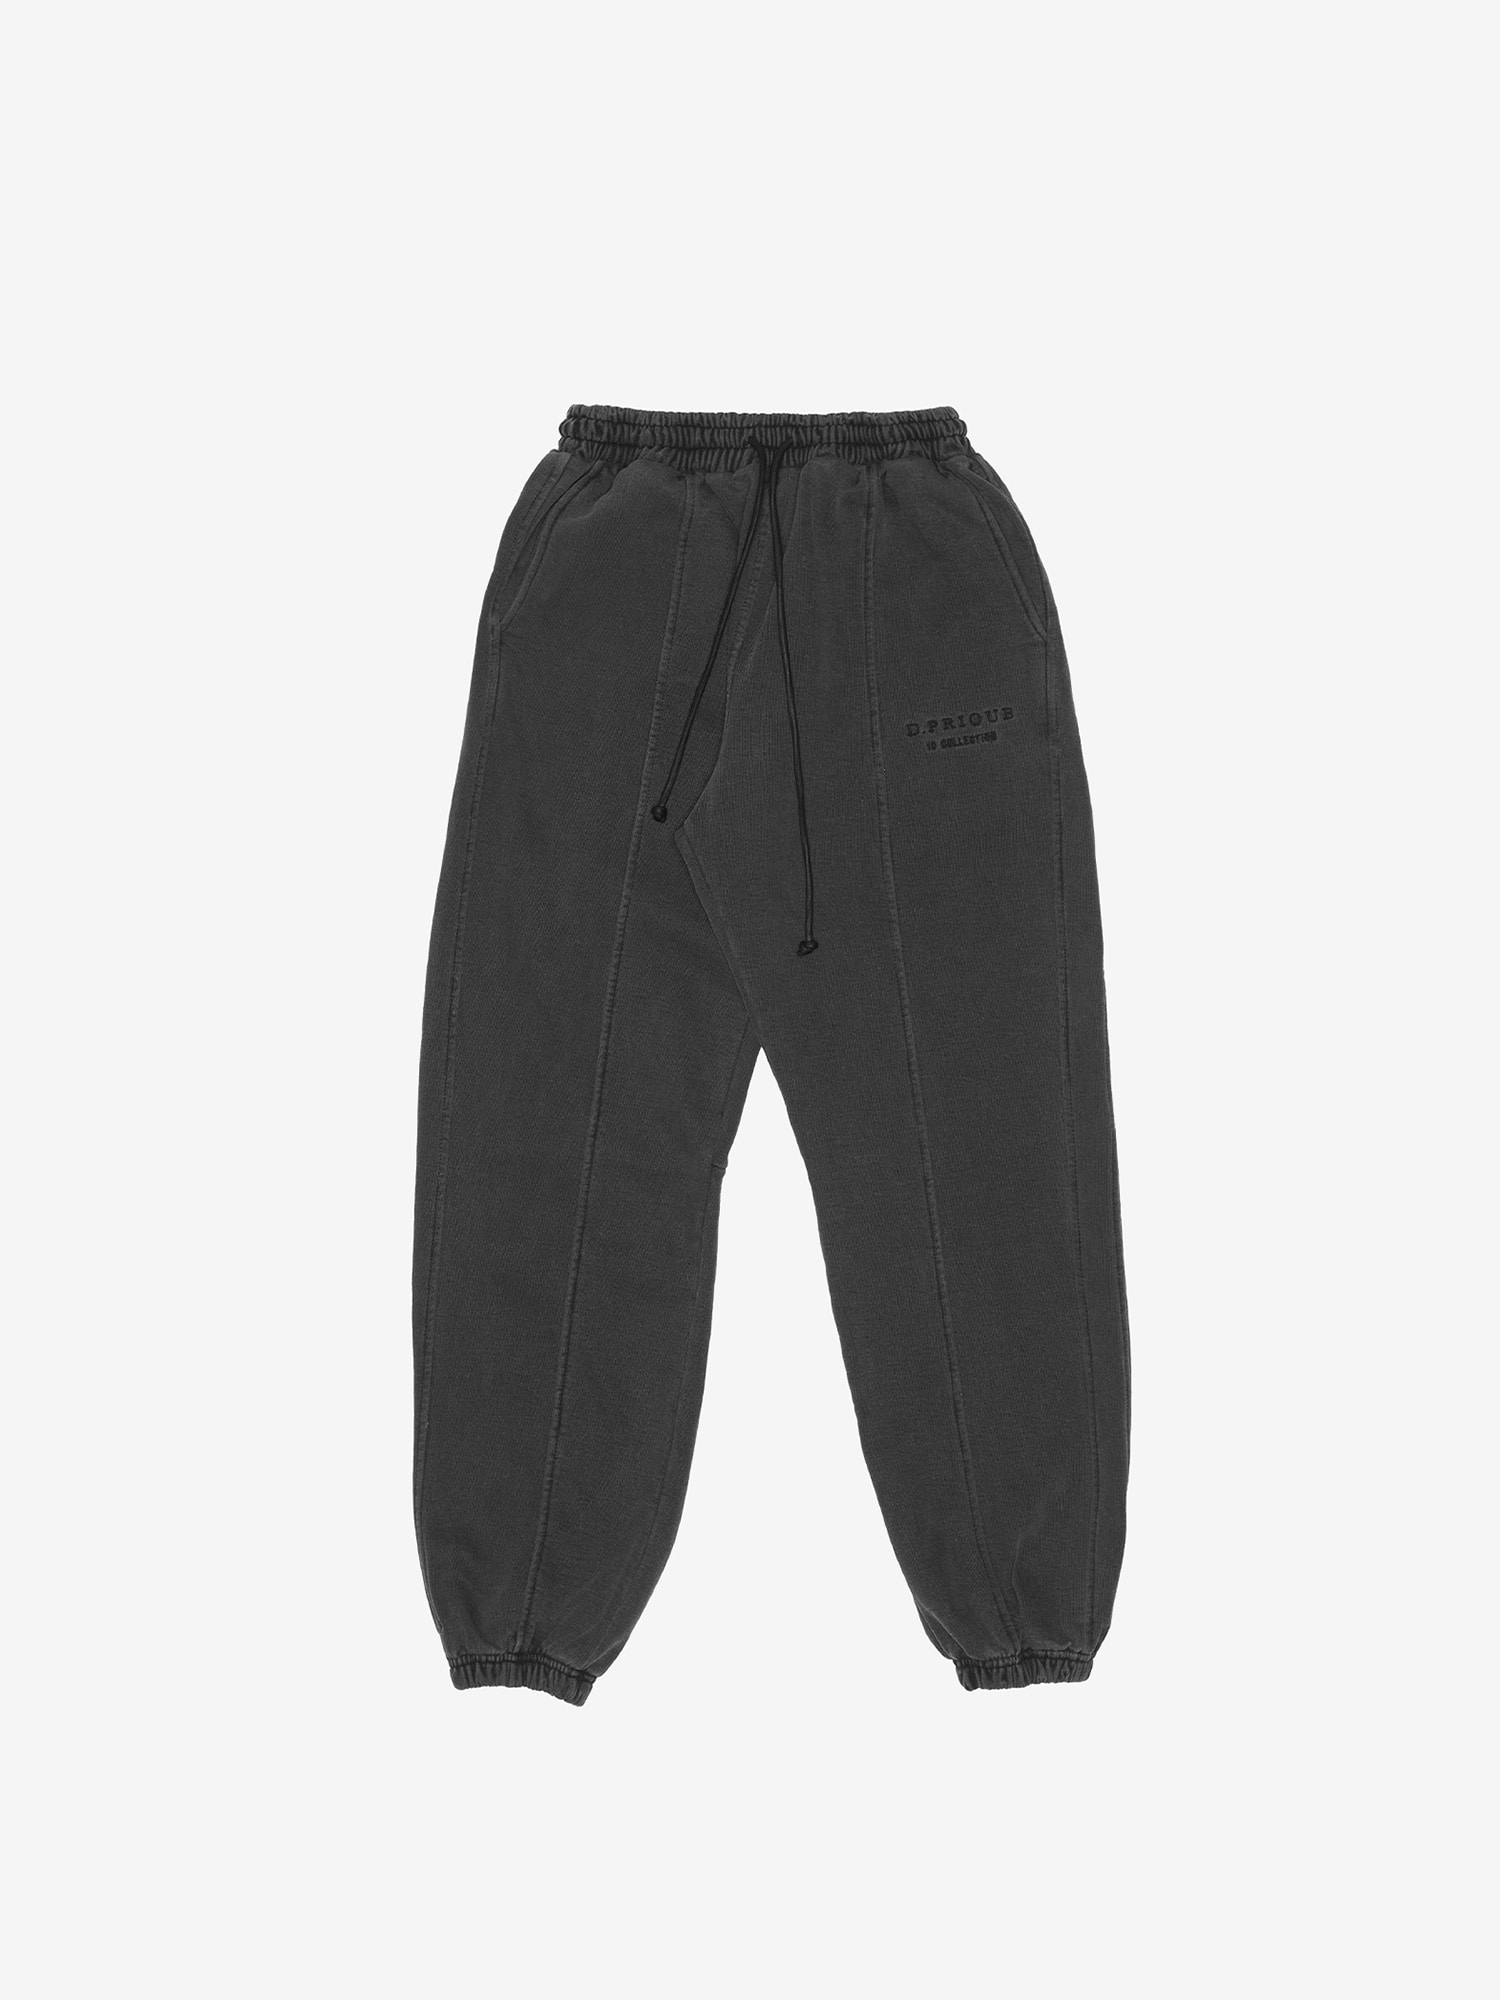 WASHED SWEATPANTS - Black